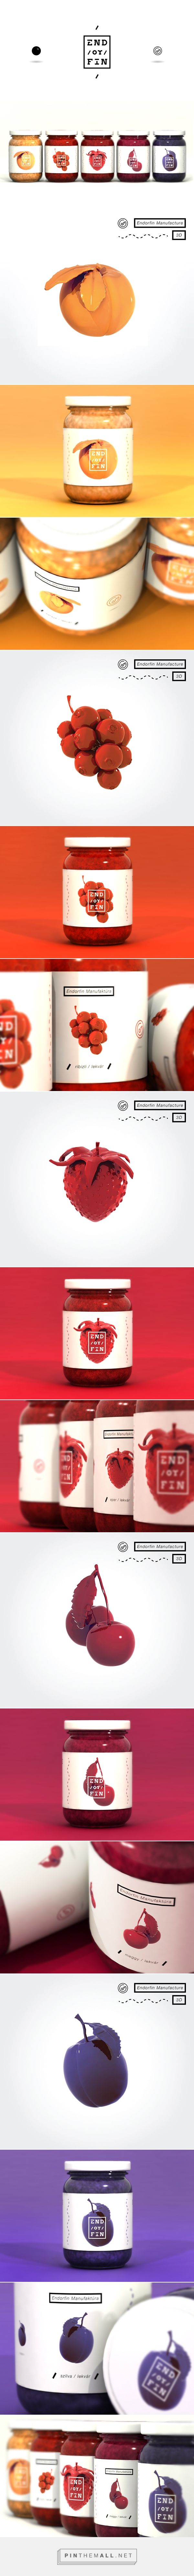 END / OR / FIN - Jam packaging on Behance by Kiss József Gergely curated by Packaging Diva PD. Been looking for the source on this great pin a long time and now I found it.